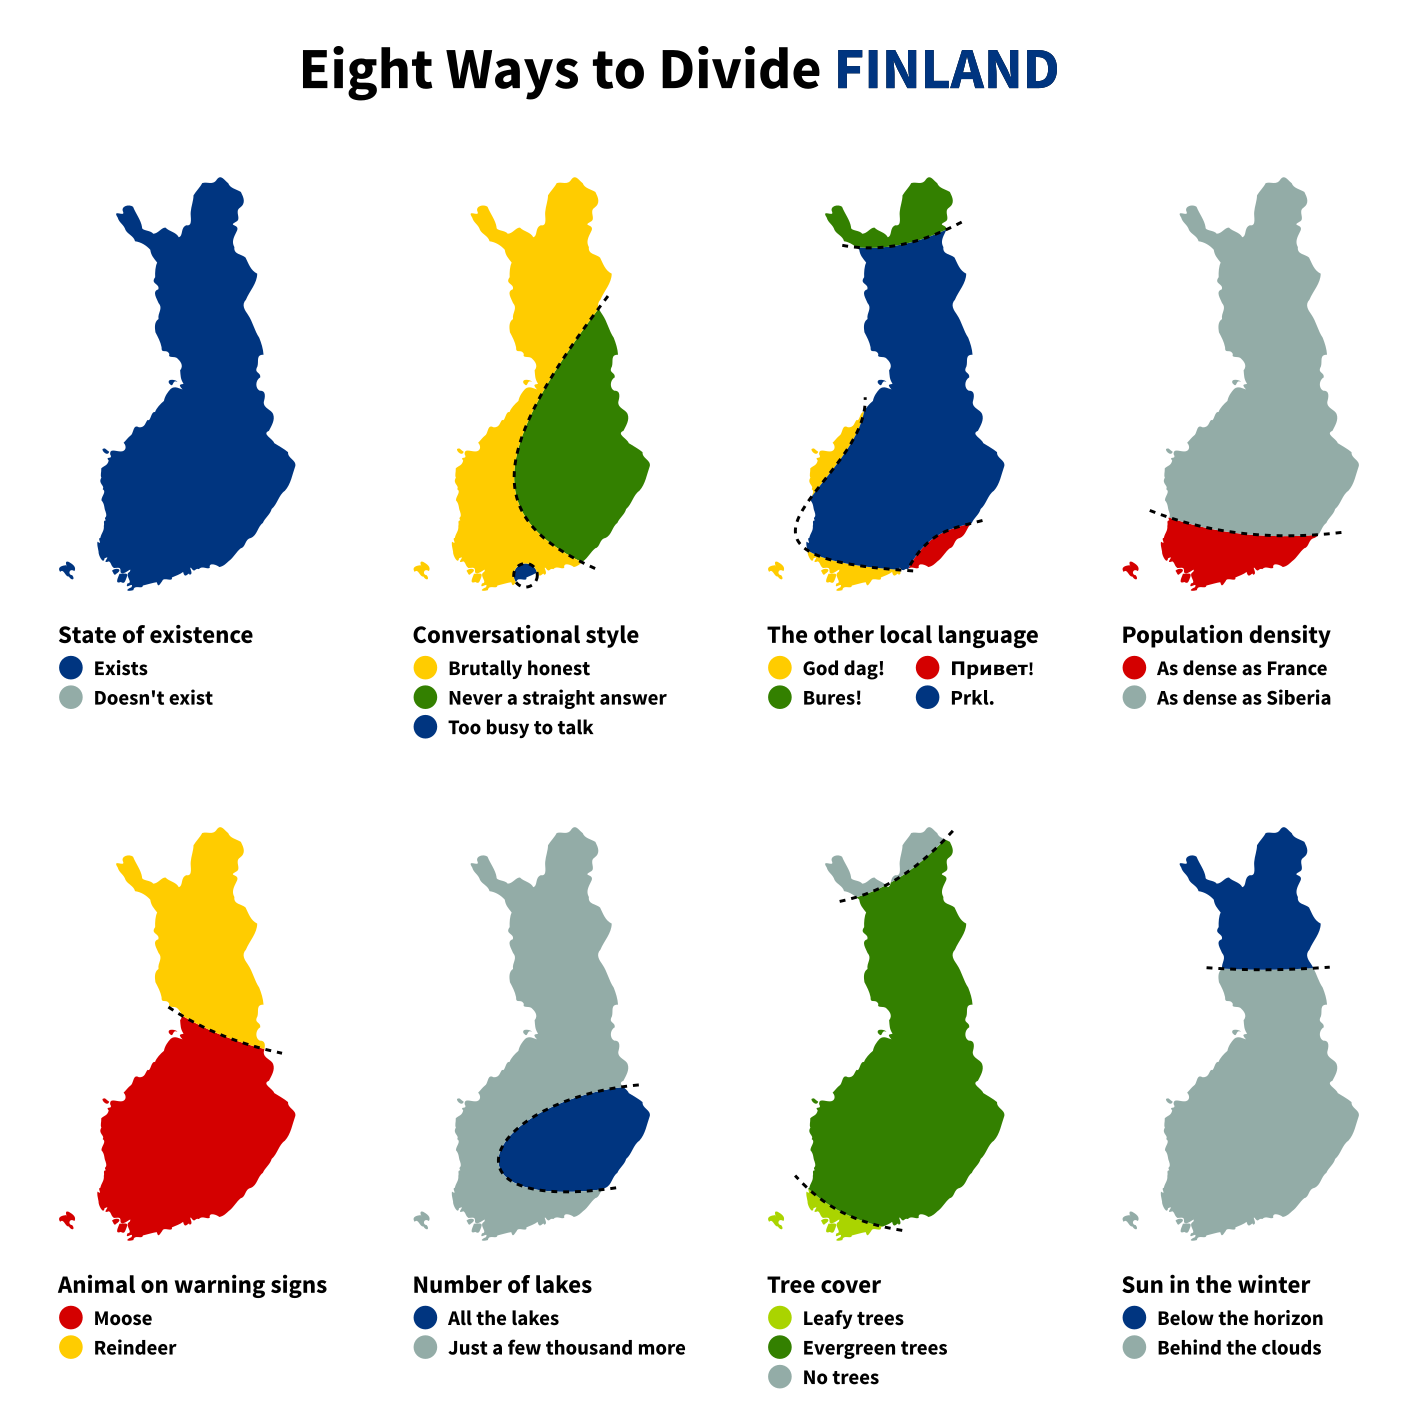 finland1.png